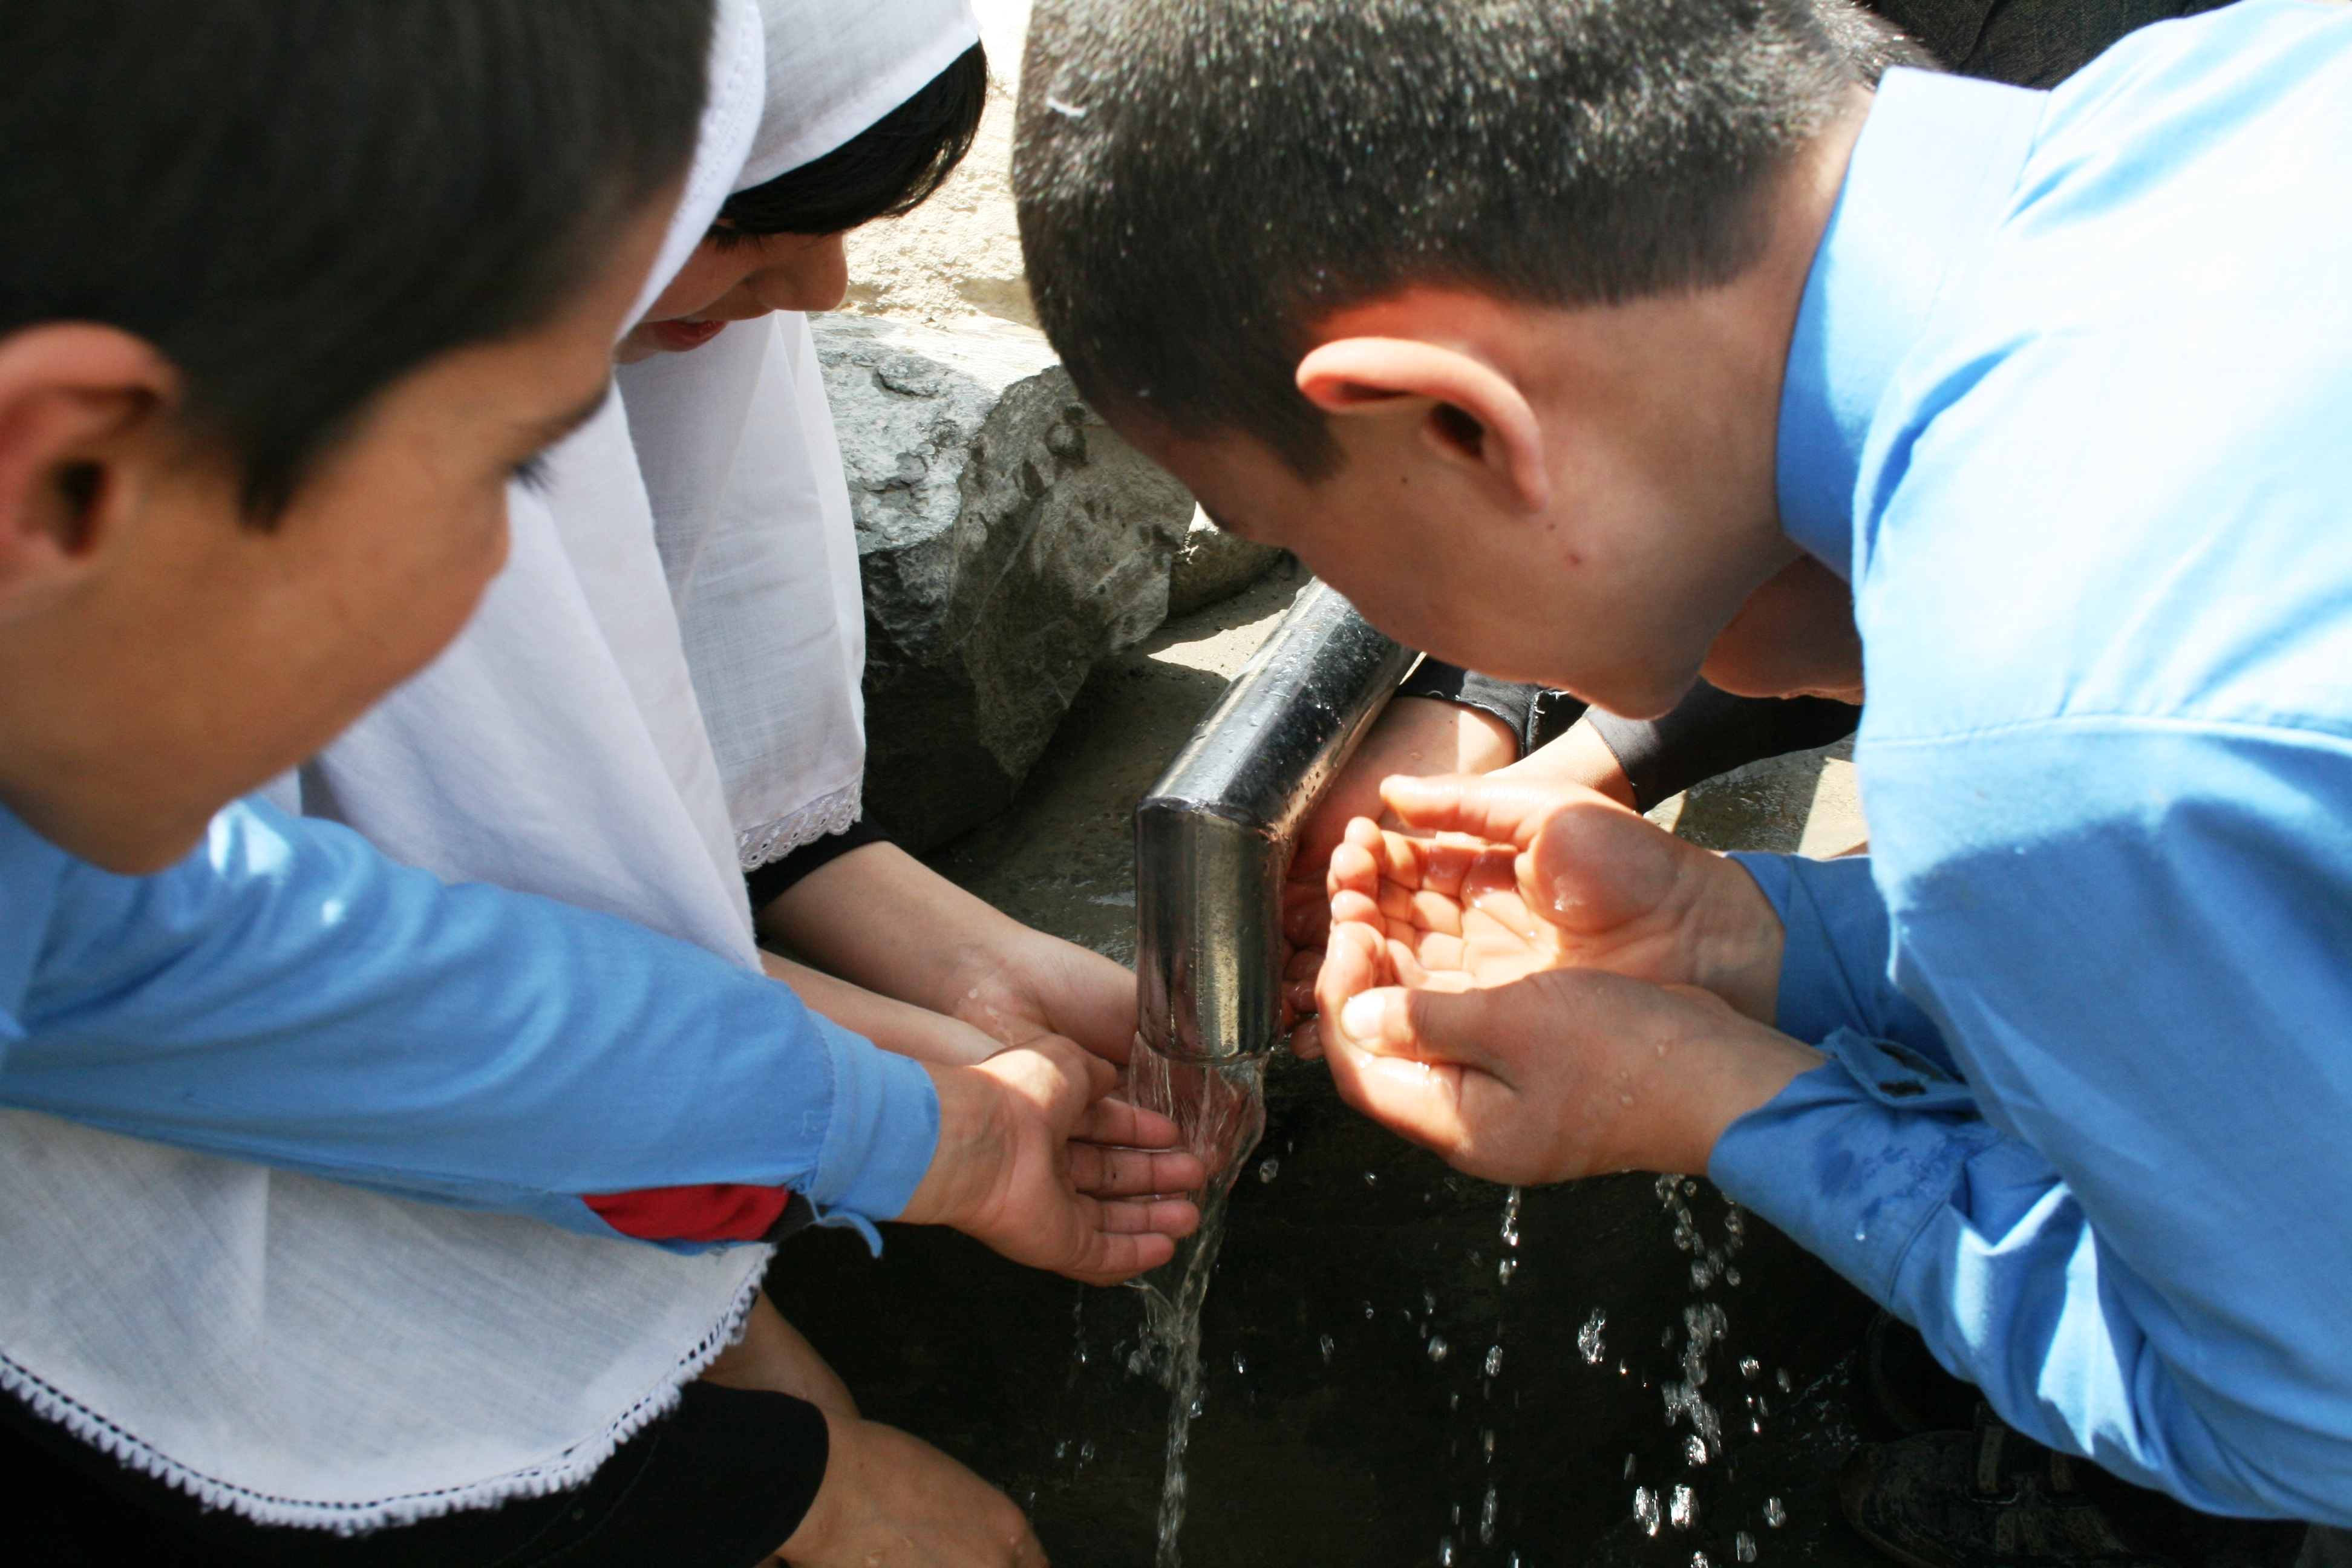 There are little hand-washing facilities in latrines at schools in Afghanistan